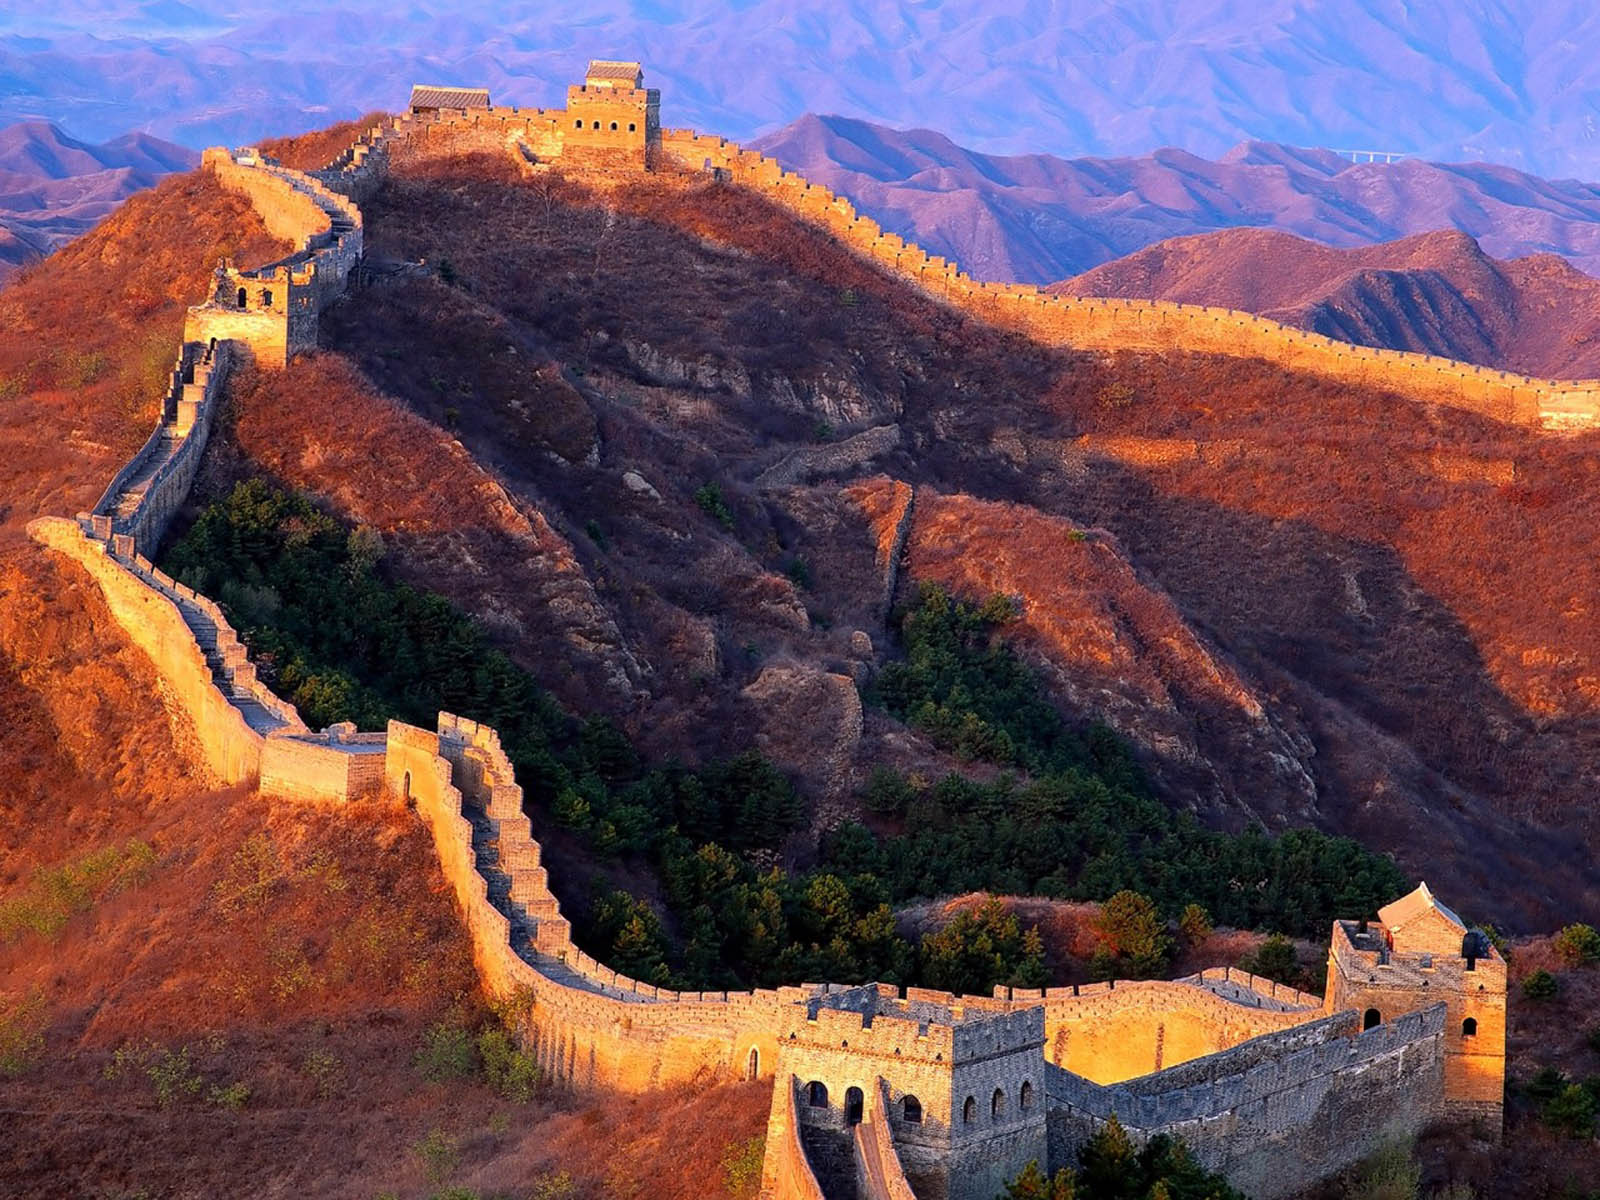 3d Wallpapers Abstract Desktop Backgrounds Wallpapers Great Wall Of China Wallpapers